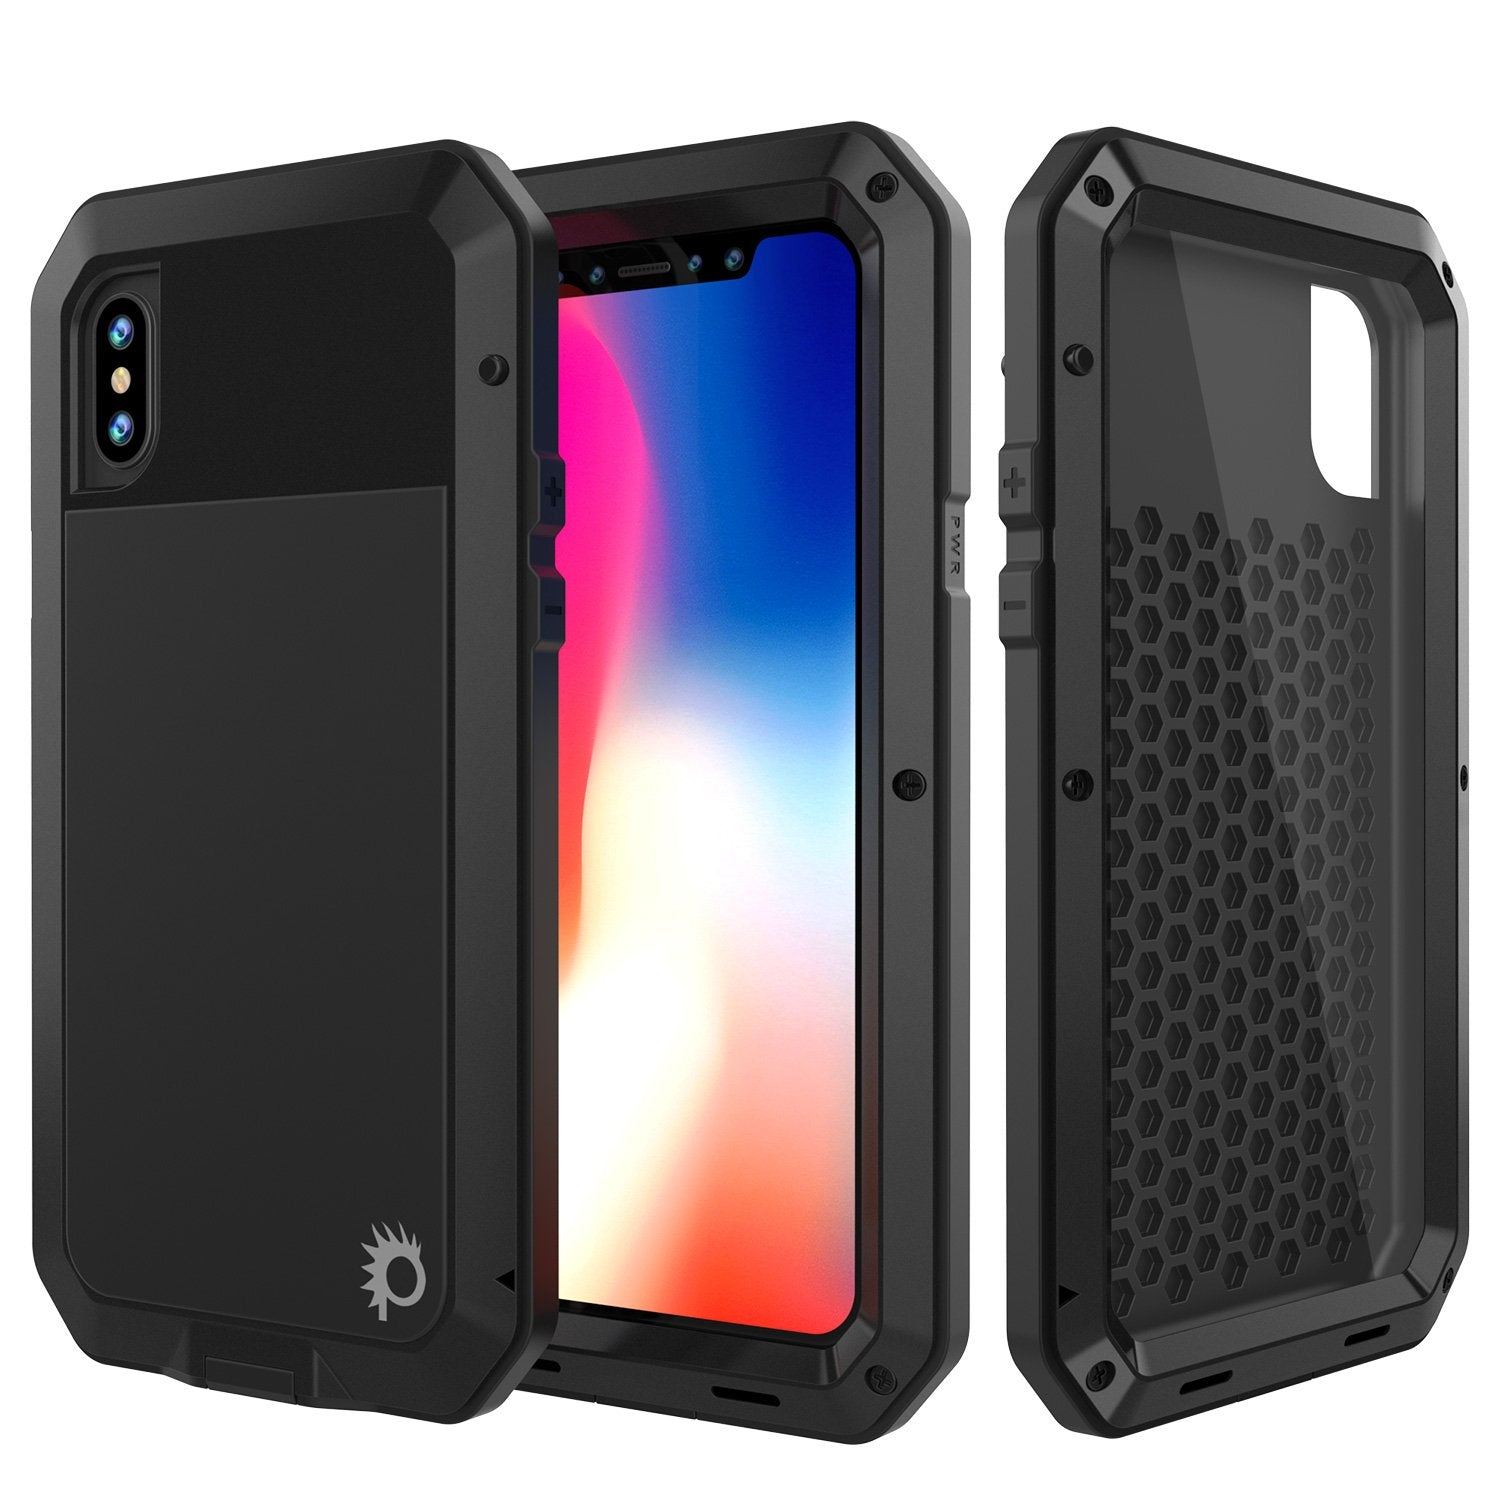 factory price de03b f3a7f iPhone XR Metal Case, Heavy Duty Military Grade Armor Cover [shock proof]  Full Body Hard [Black]